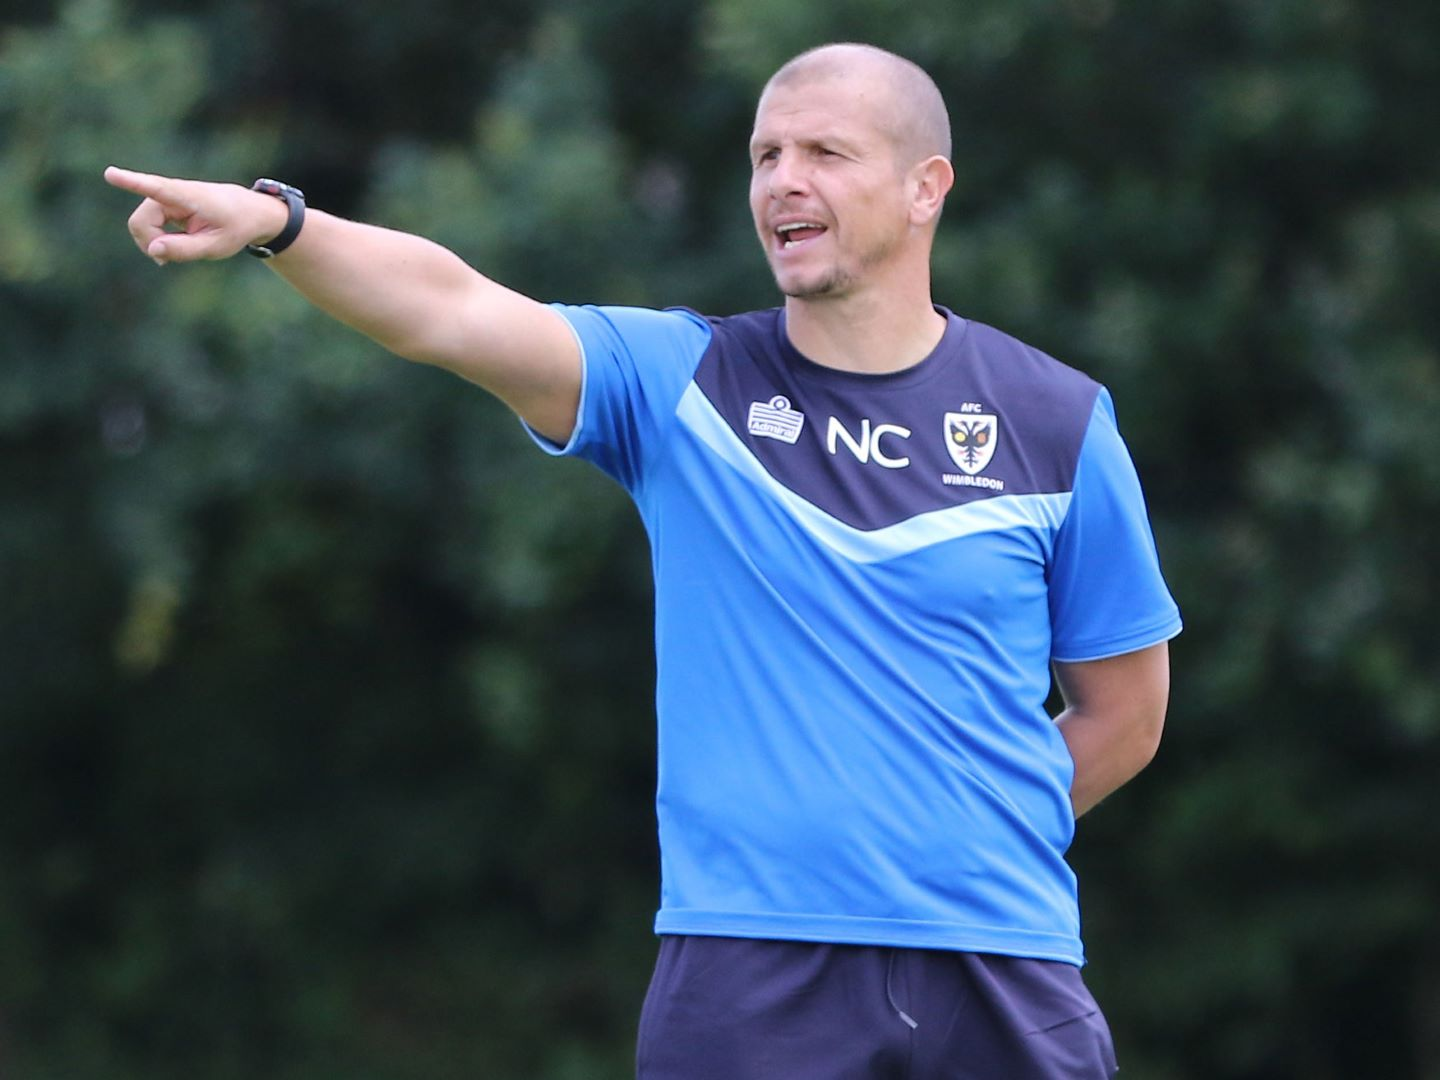 Neil Cox gives instructions during a training session